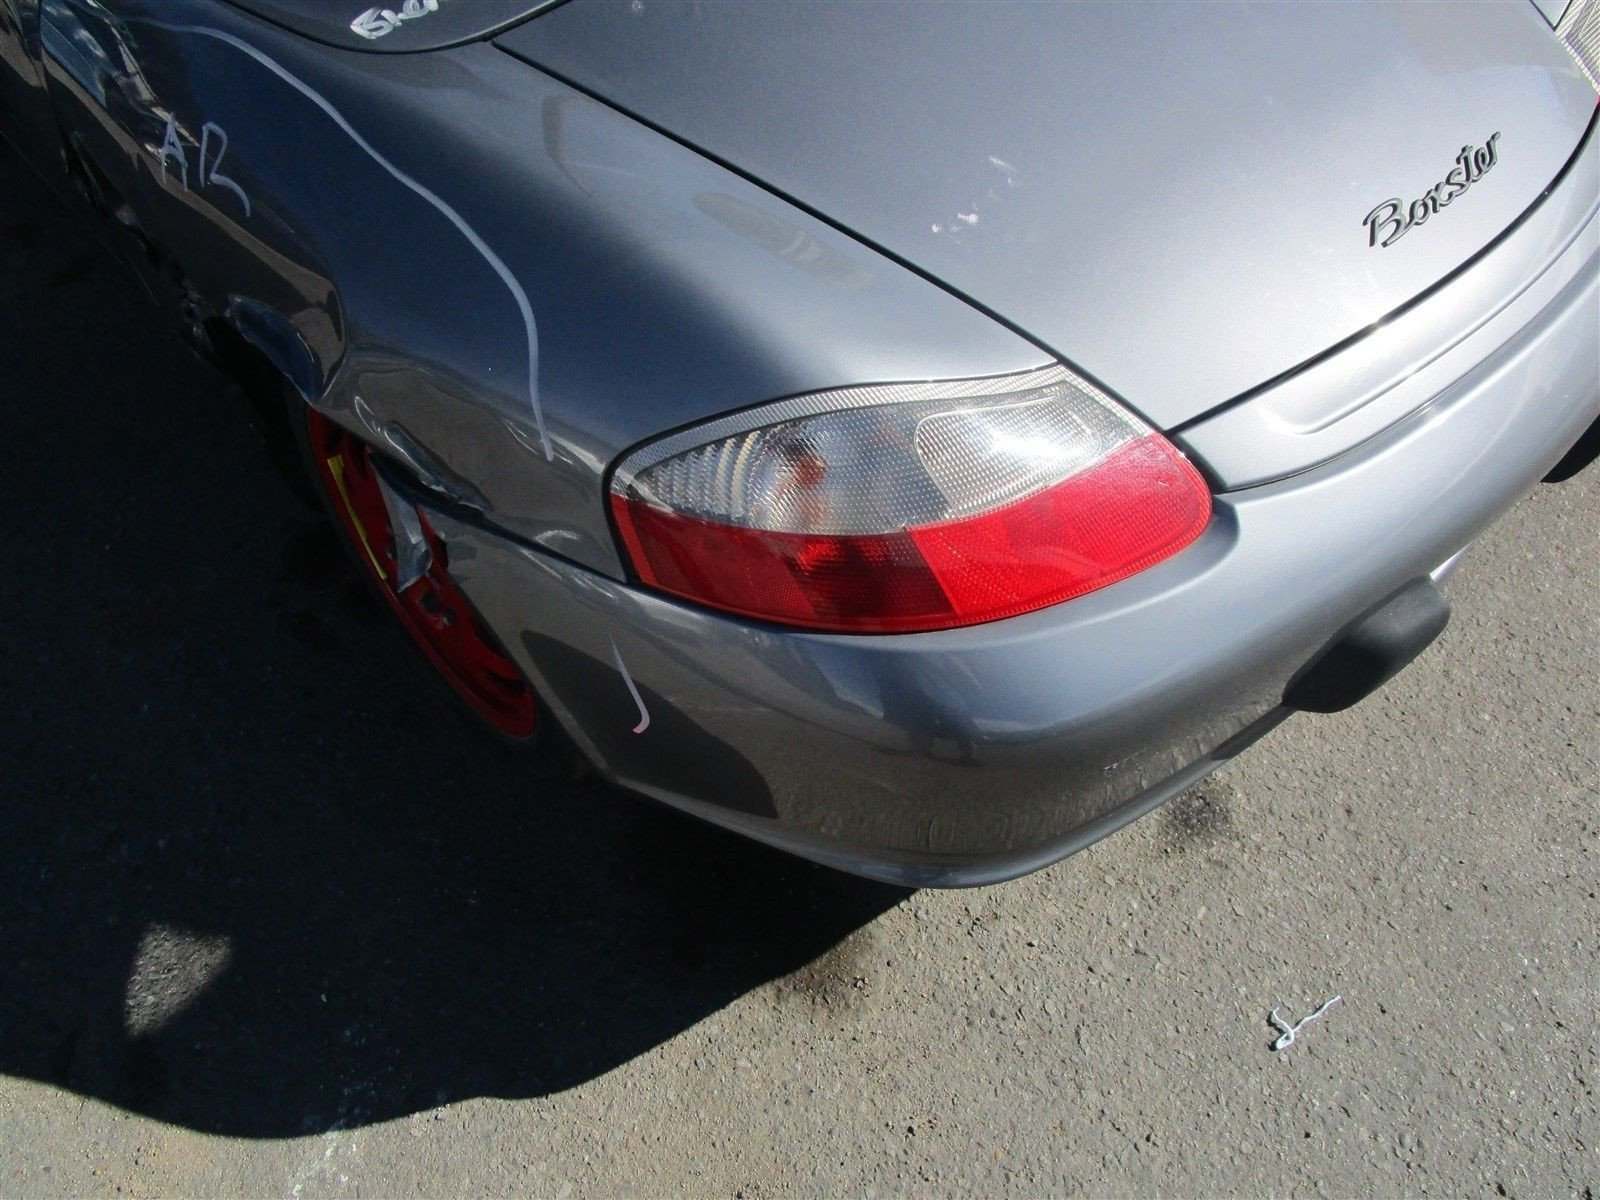 04 Boxster RWD Porsche 986 Parting Out parts car 22,067